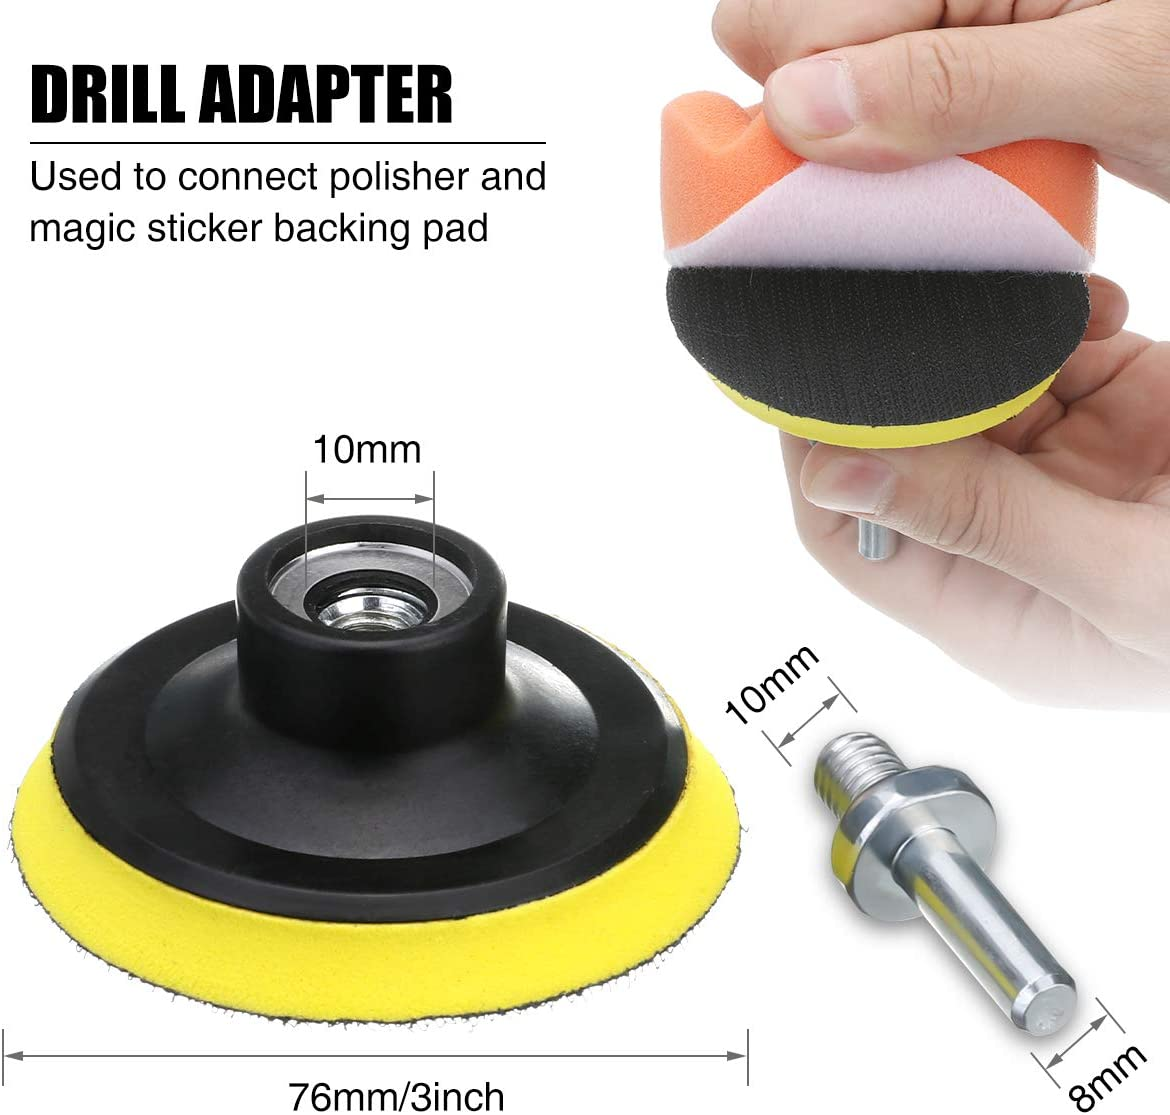 Wool Pads Car Foam Drill Polishing Pad Kit Cleaning /& Waxing GOH DODD 3 inch 50 Pieces Polisher Buffing Pads Backing Plate M10 Drill Adapter for Washing